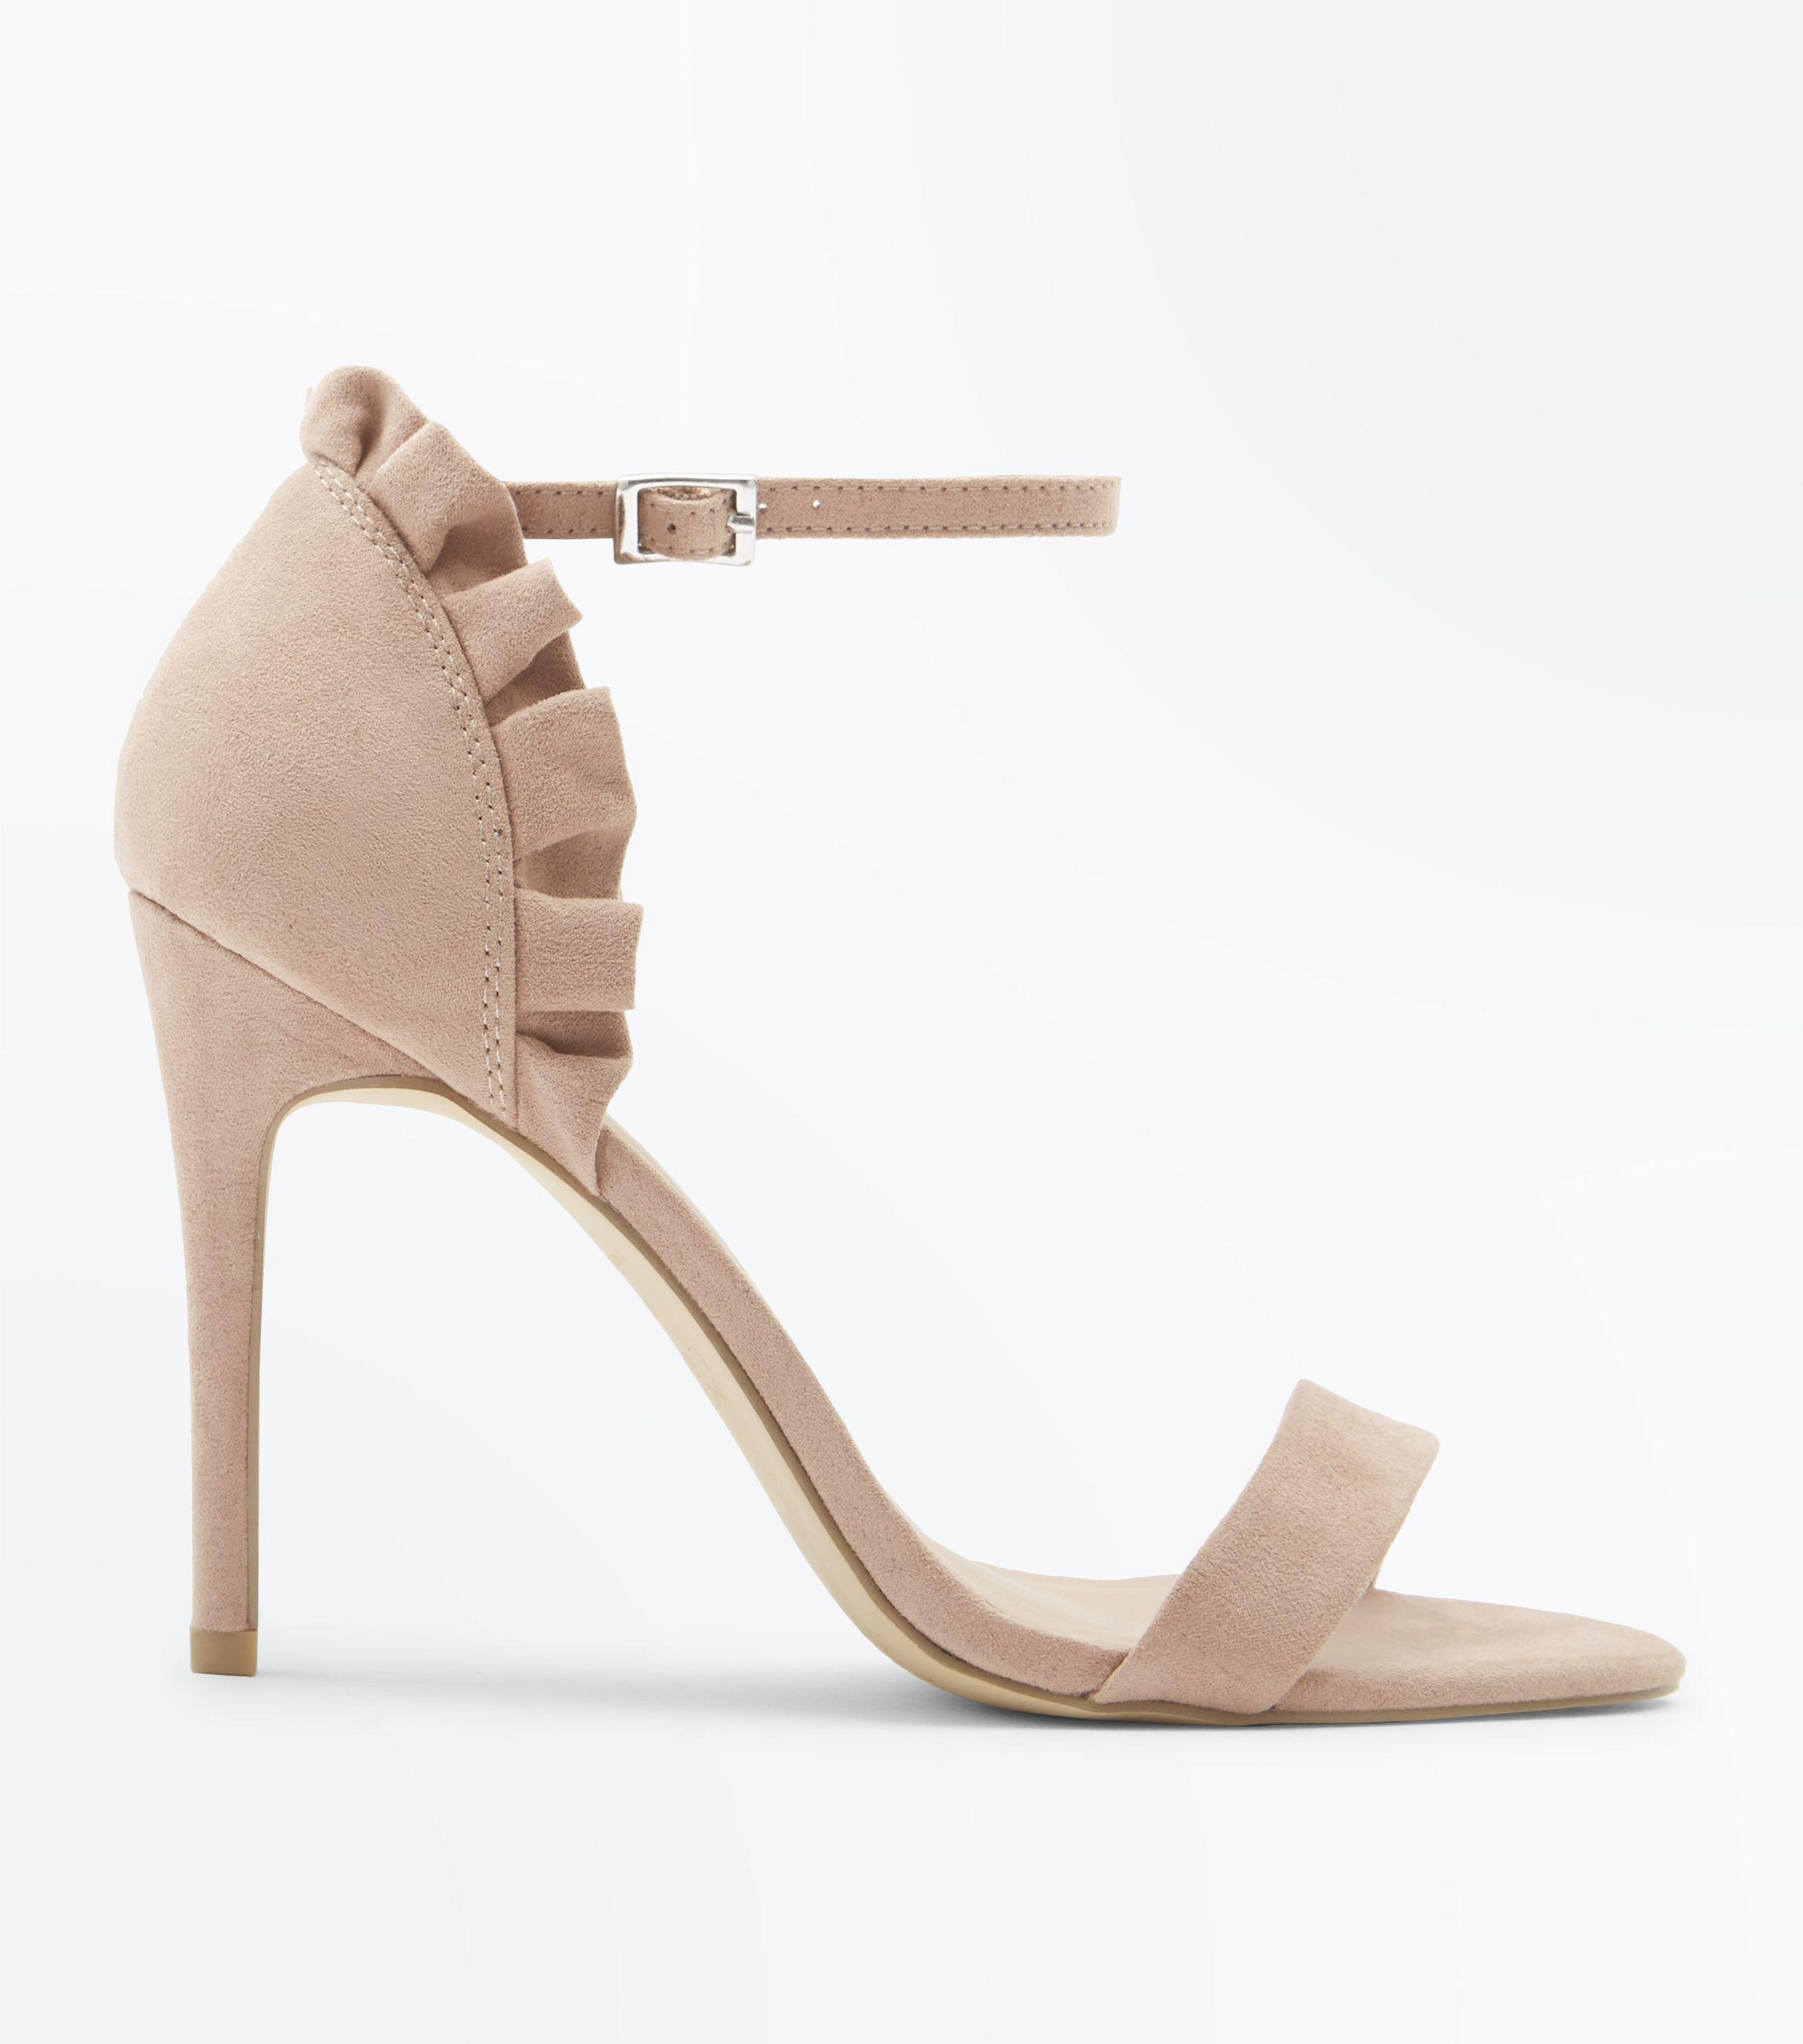 5c559636daf4 New Look Nude Suedette Frill Back Stiletto Heel Sandals in Natural ...